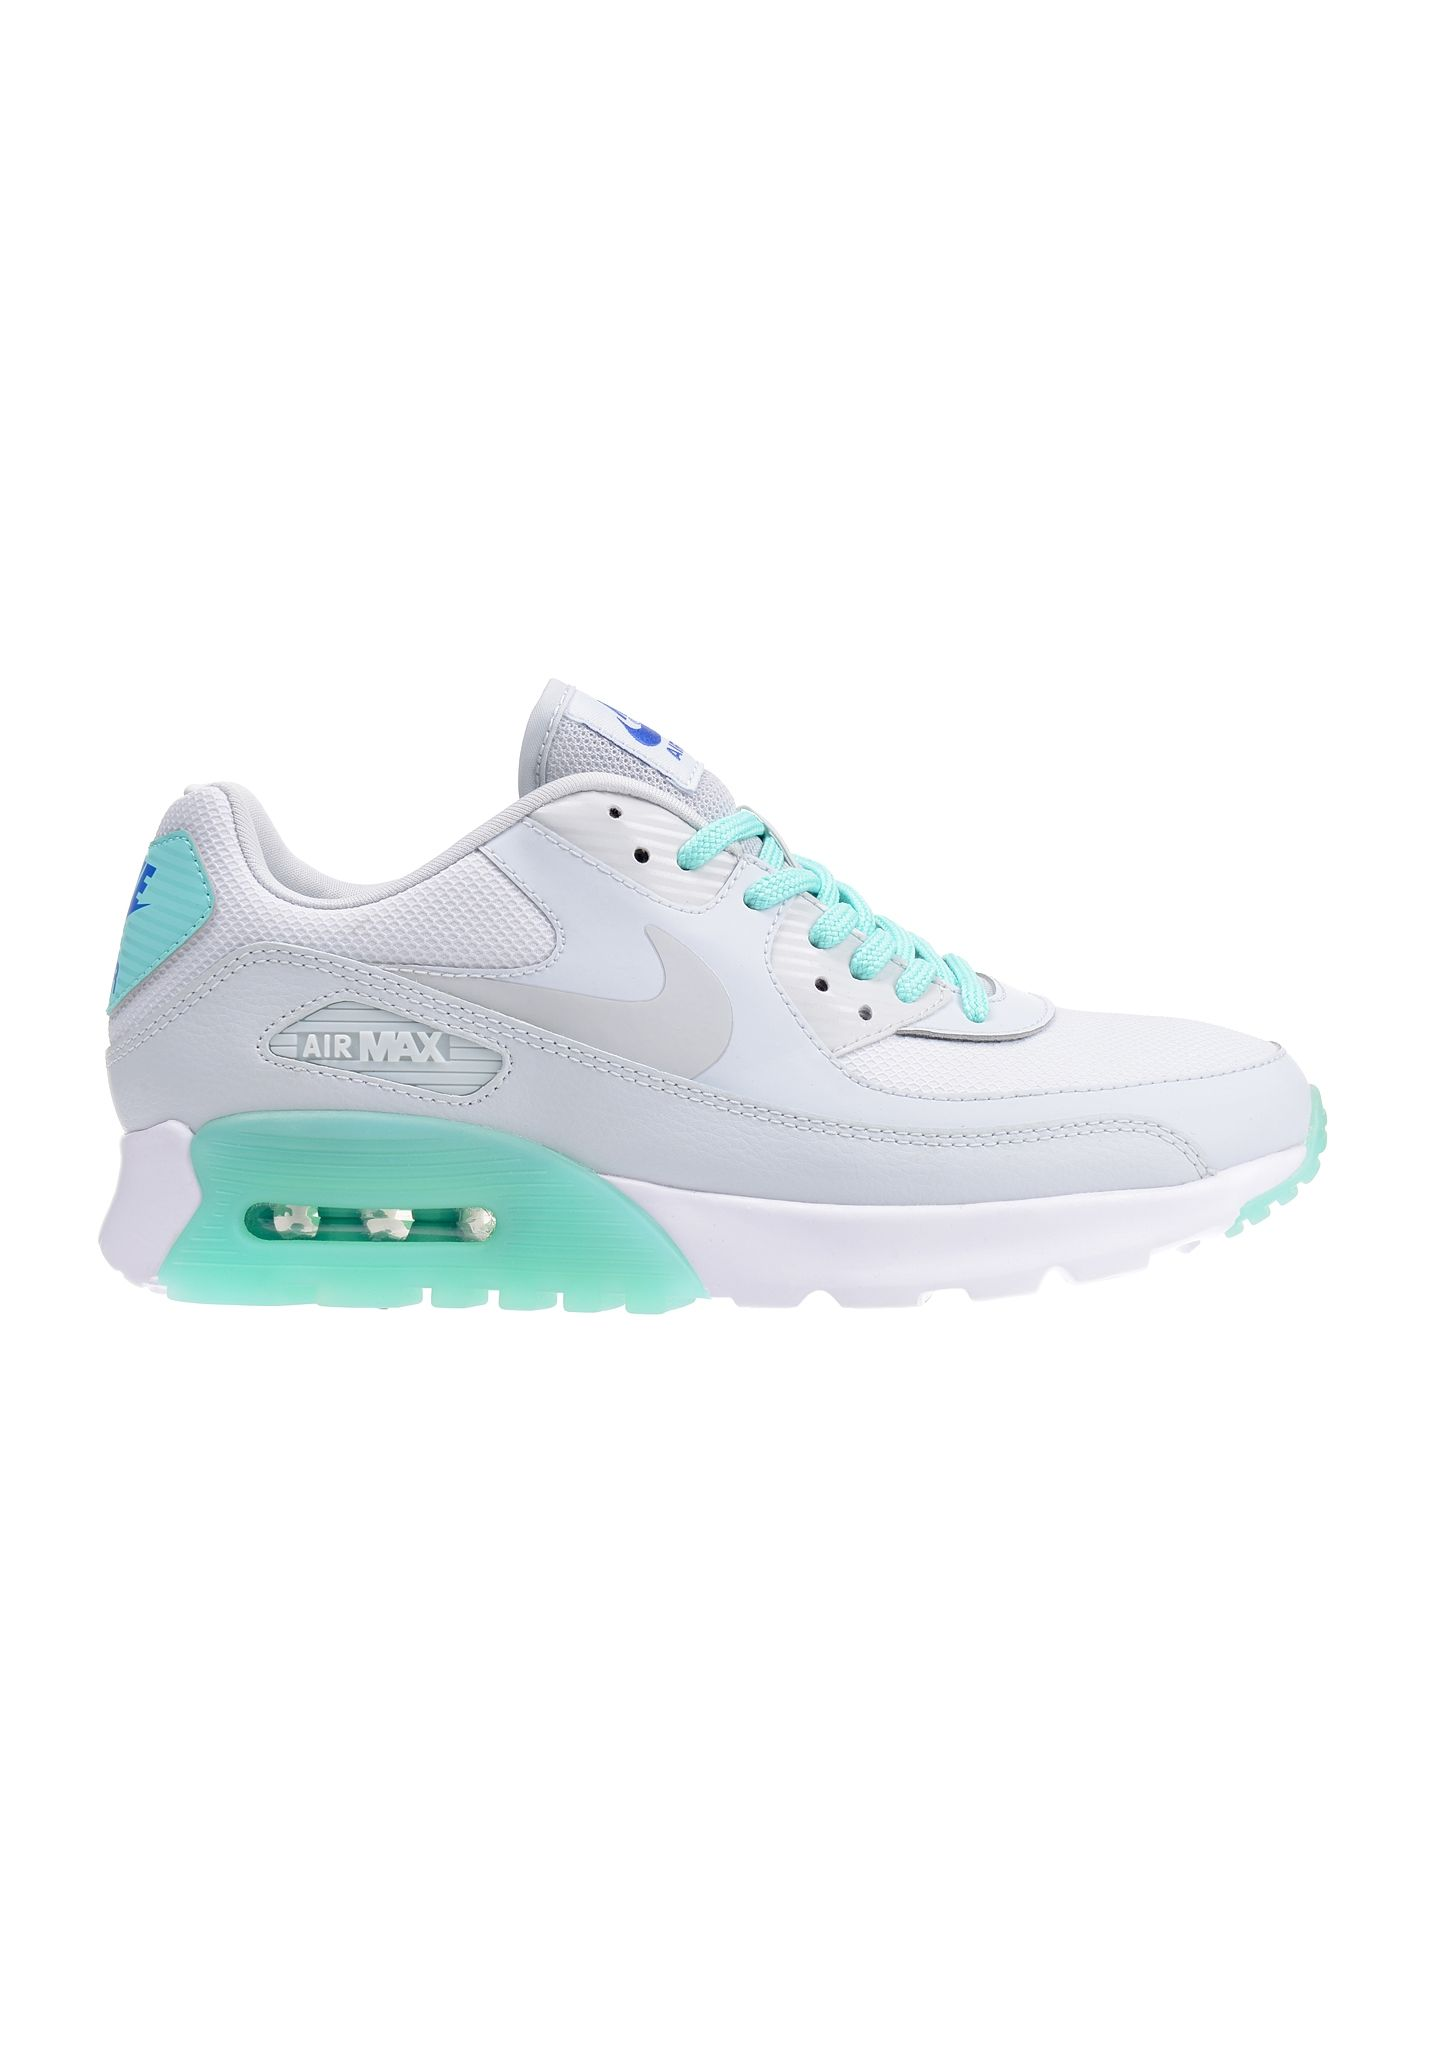 best service 206d9 728d4 NIKE SPORTSWEAR Air Max 90 Ultra Essential - Sneakers for Women -  Multicolor - Planet Sports